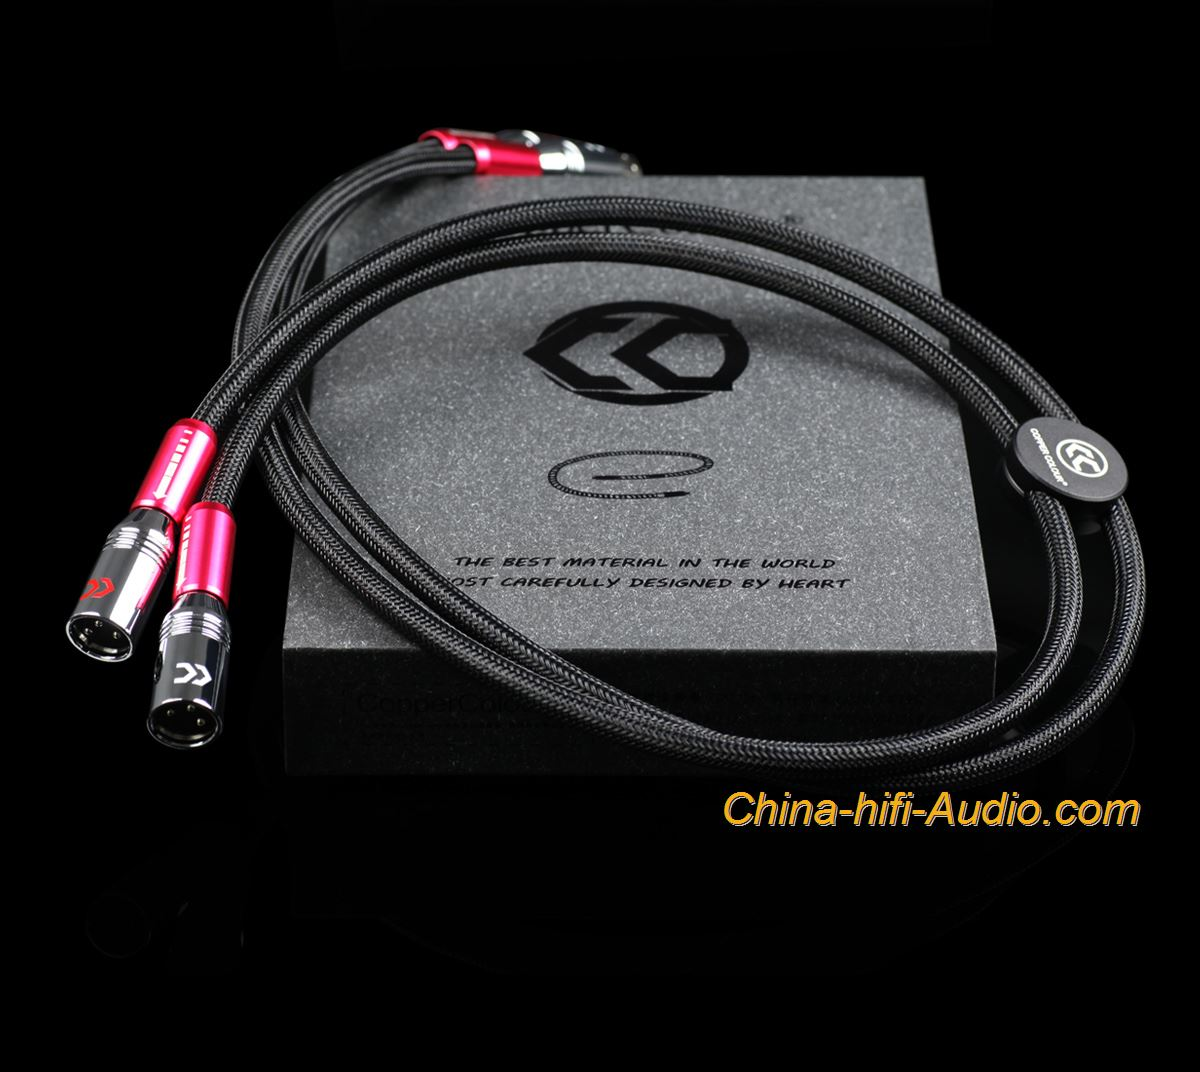 CopperColour CC WHISPER-SE OCC XLR audiophile Audio Balanced cable